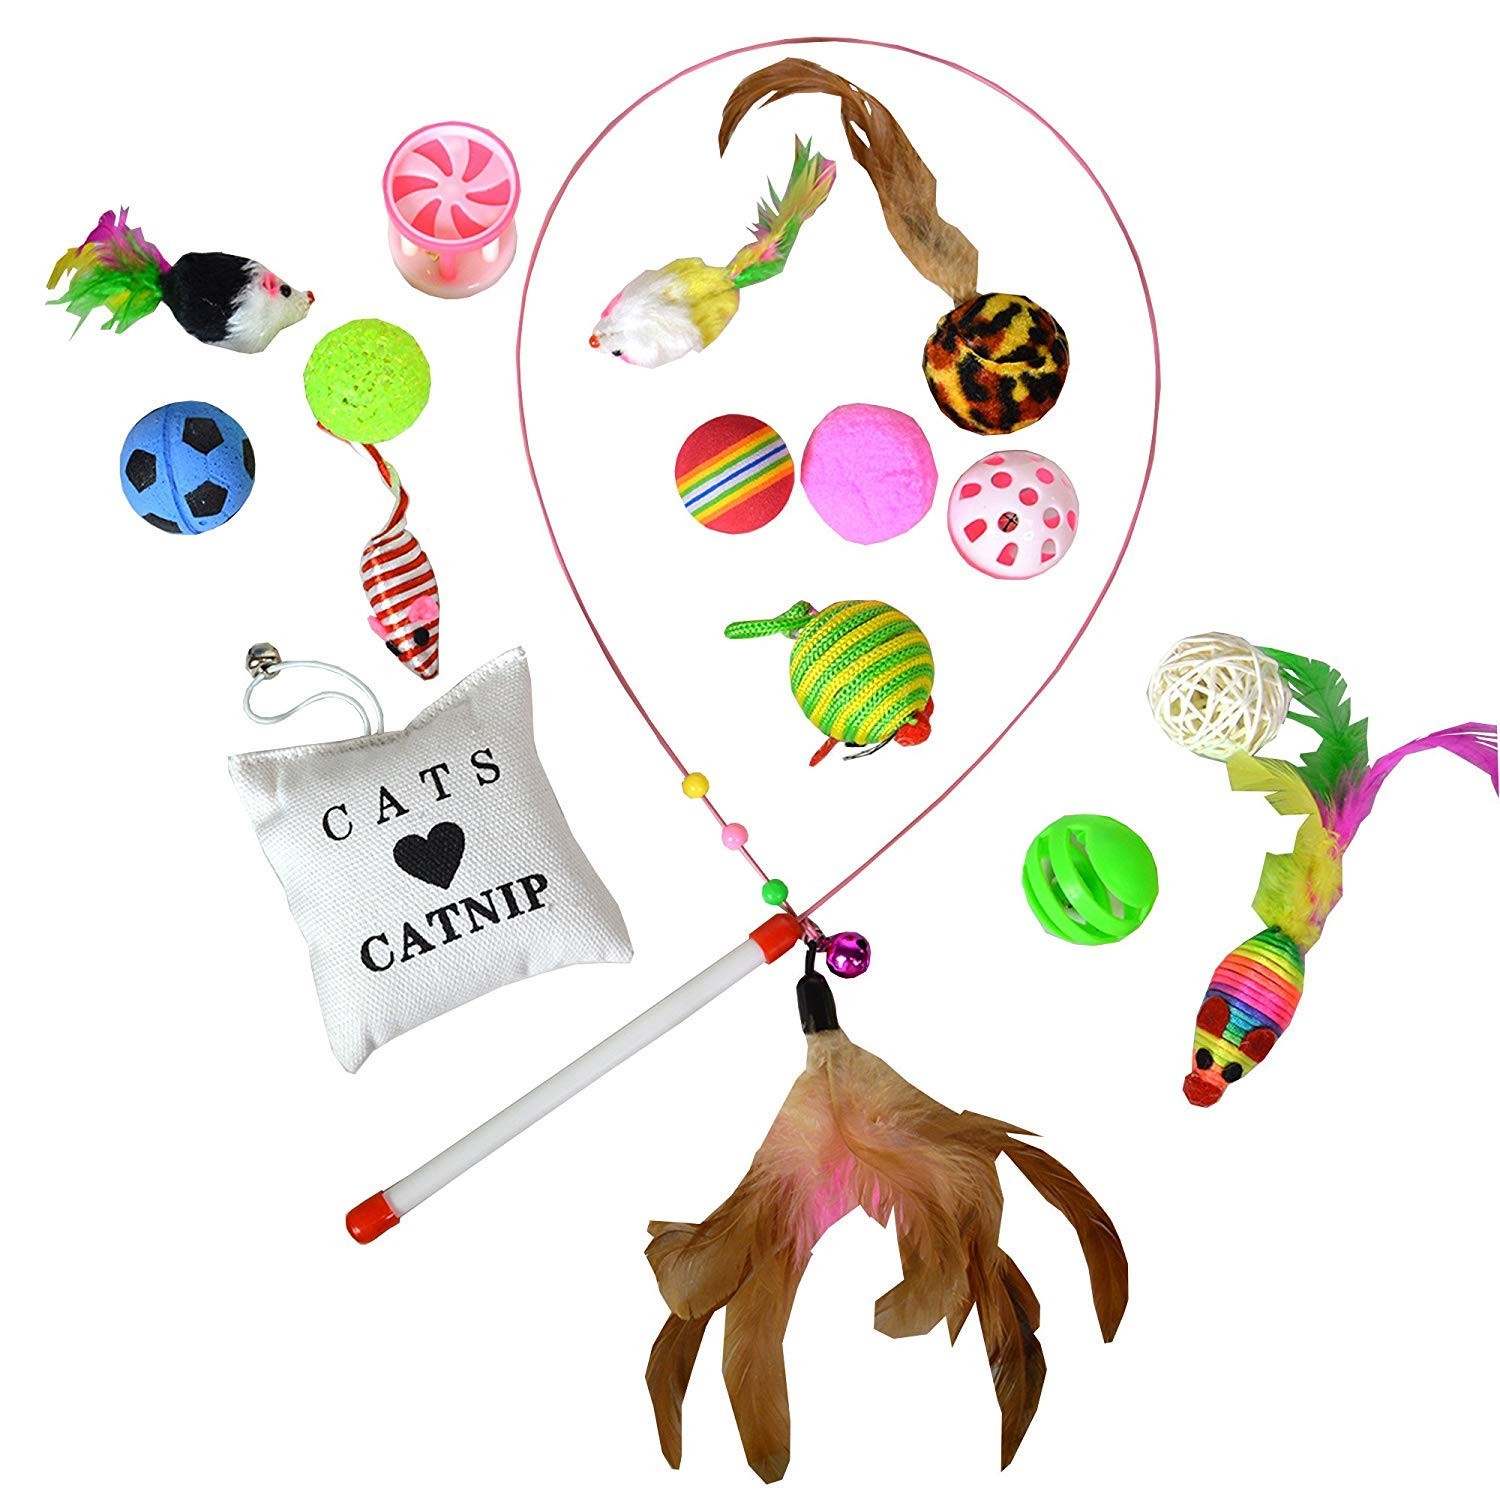 WXJHA Cat Toys Set,Cat Feather Teaser, Wand Interactive, Fluffy Mouse, Crinkle Balls - Best Gift for Cat